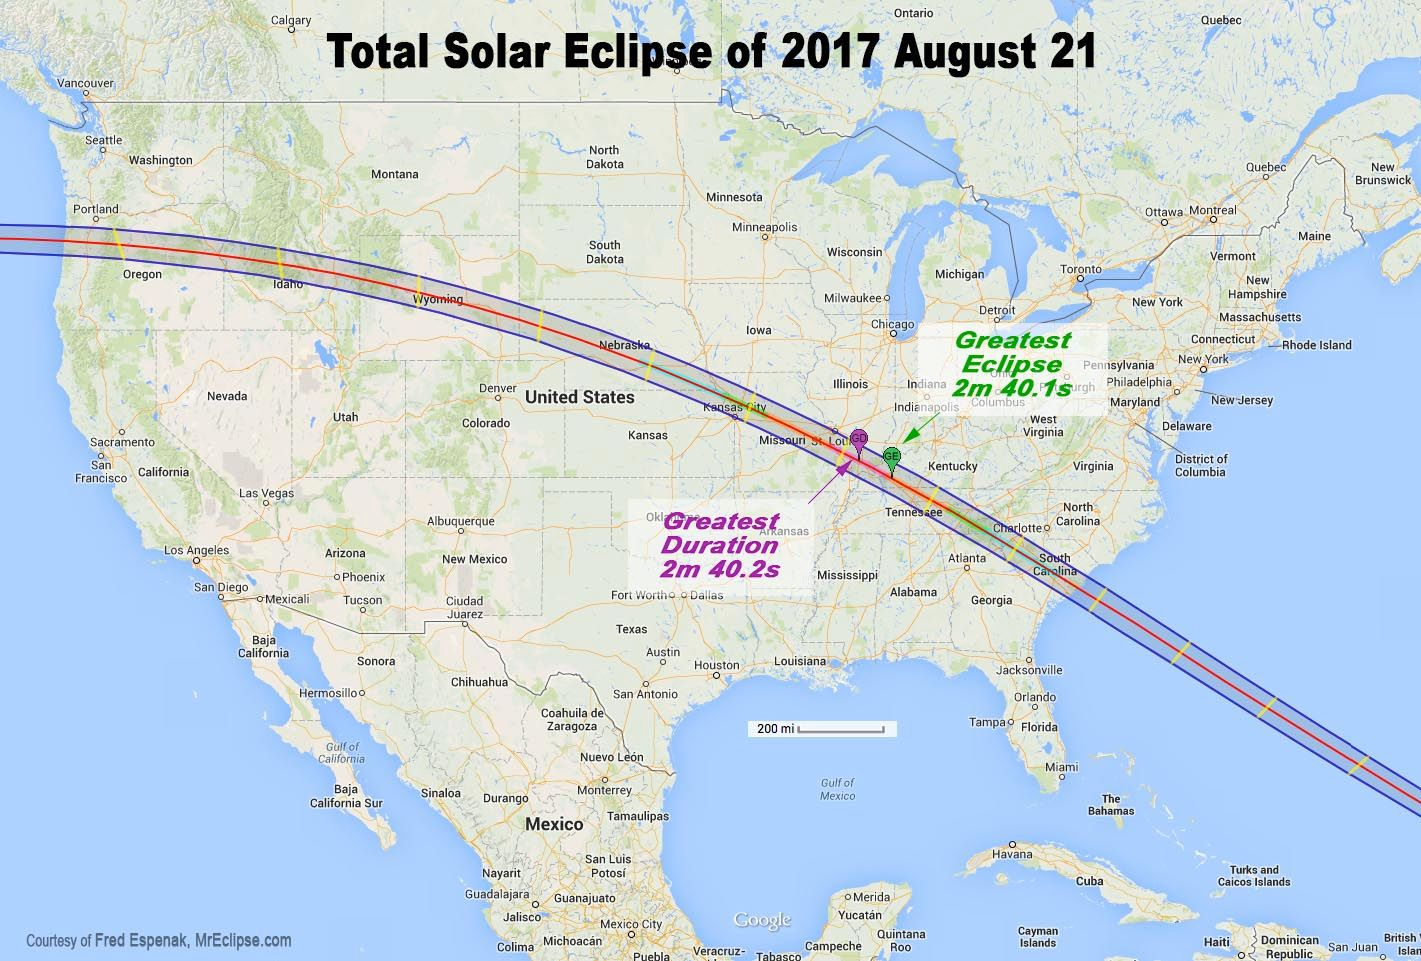 The sky will darken across America on Aug. 21, 2017 in the most epic solar eclipse in 99 years. Here are the best places and times to see it.